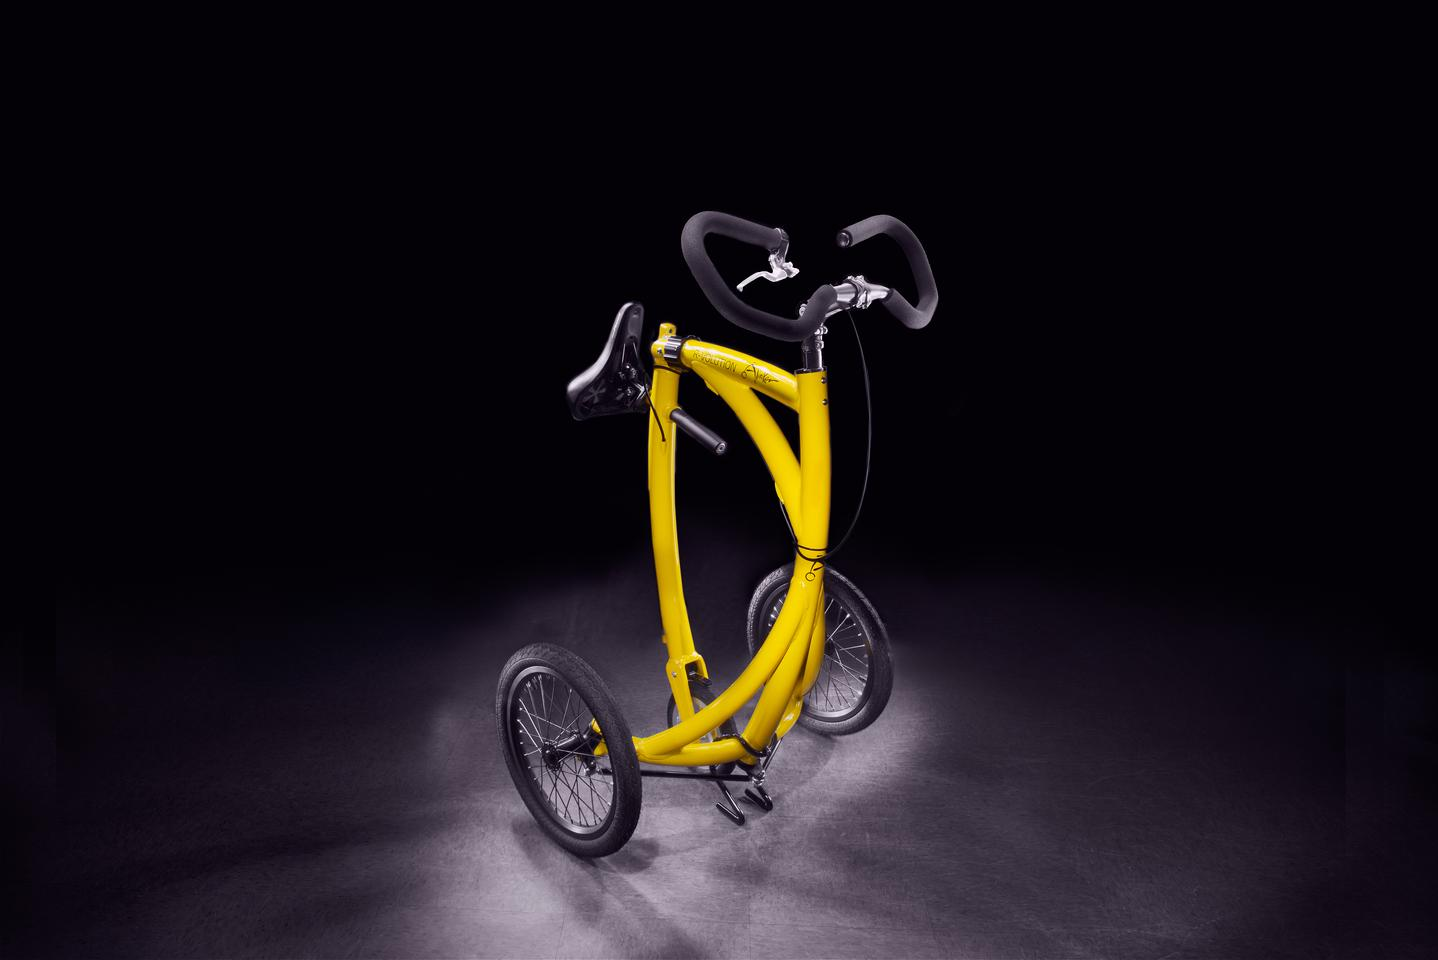 In addition to a folding frame, the Alinker includes quick-release front wheels